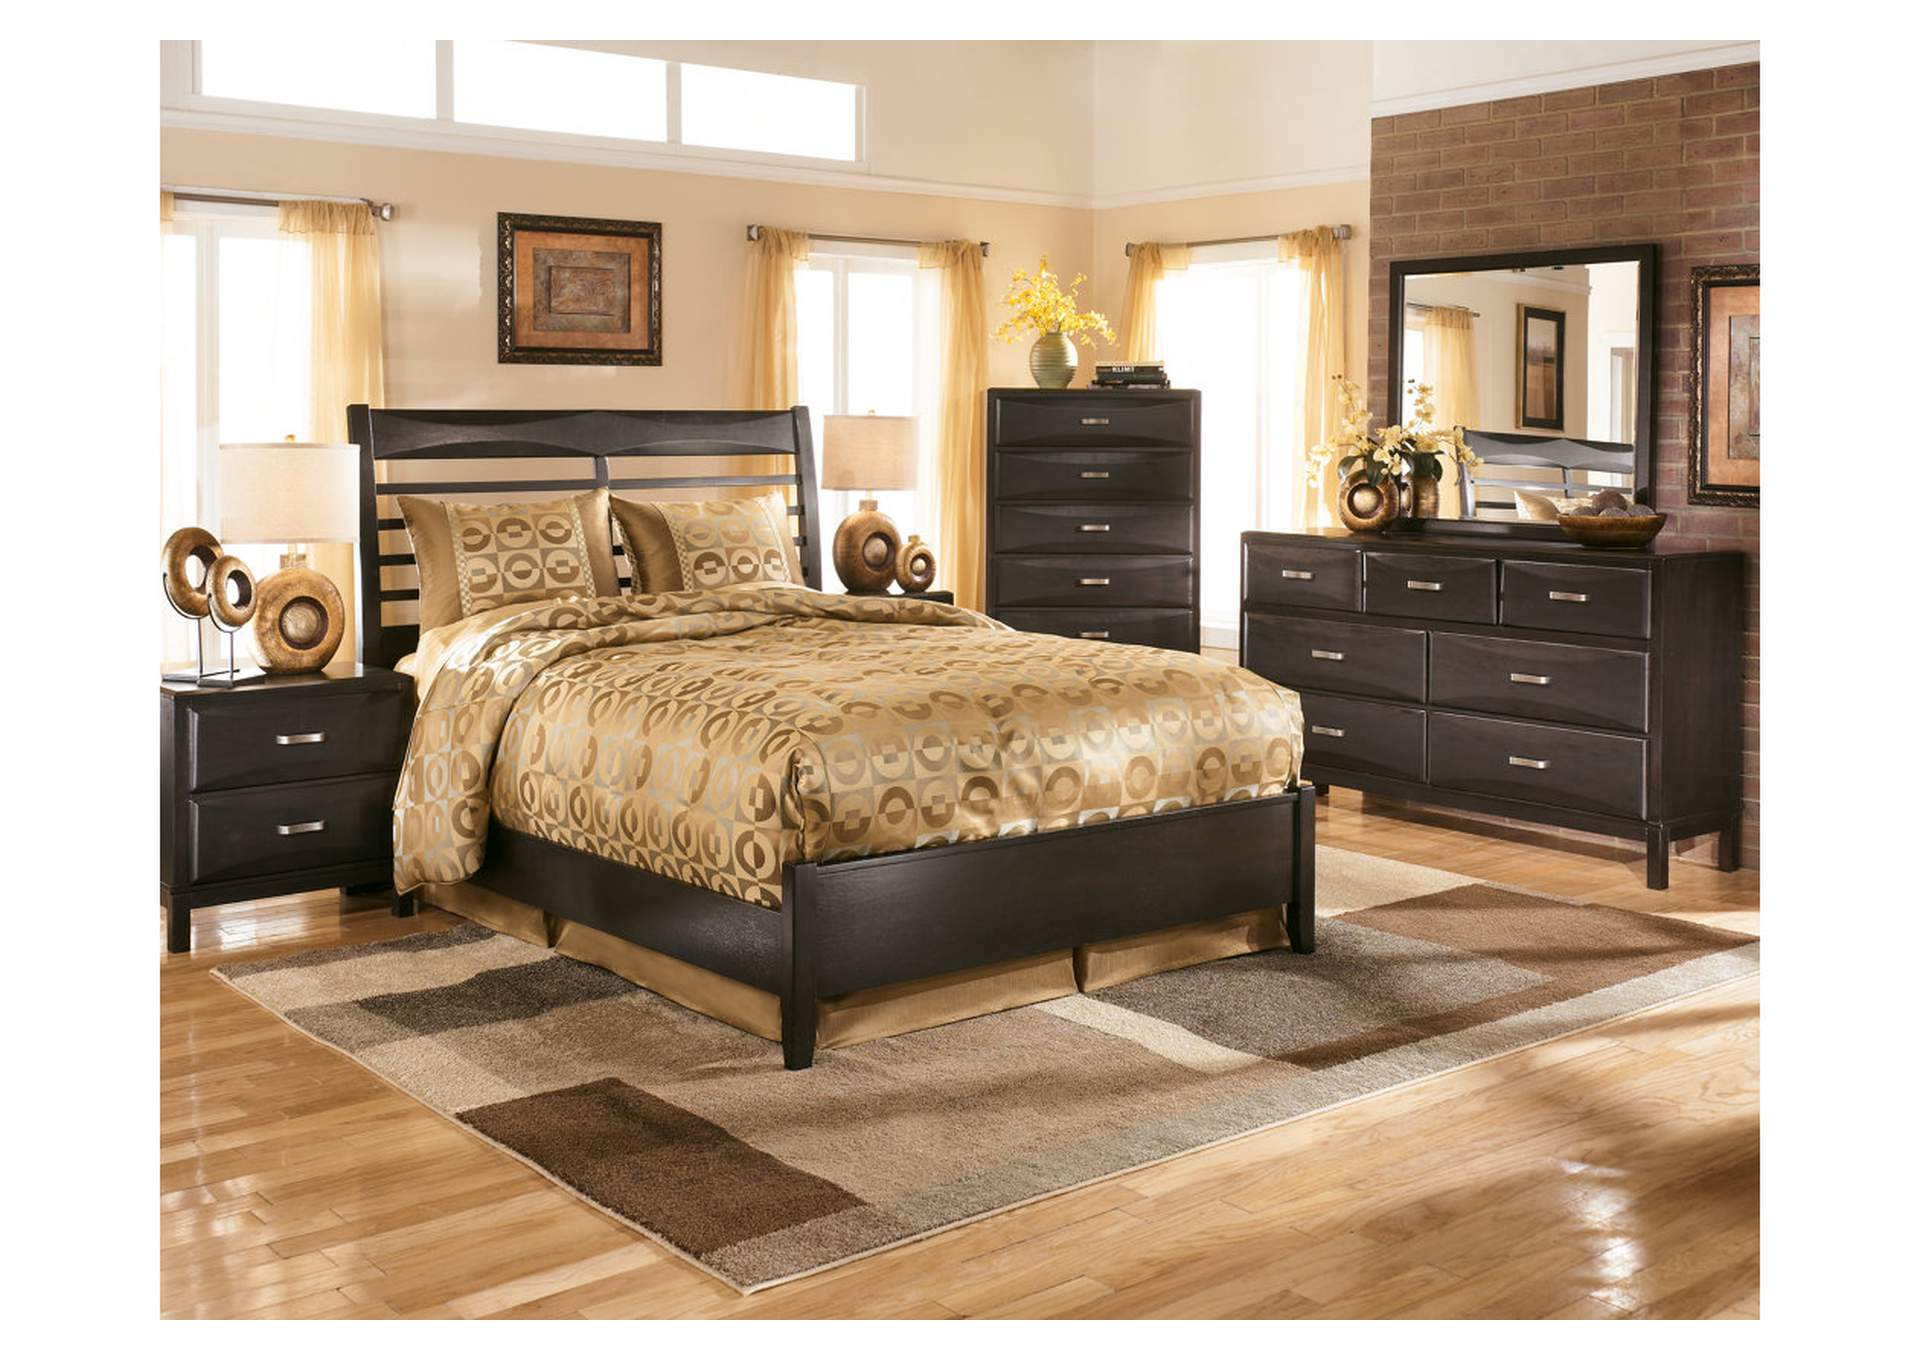 Kira Black Queen Panel Bed w/Dresser, Mirror, Drawer Chest & Nightstand,Ashley